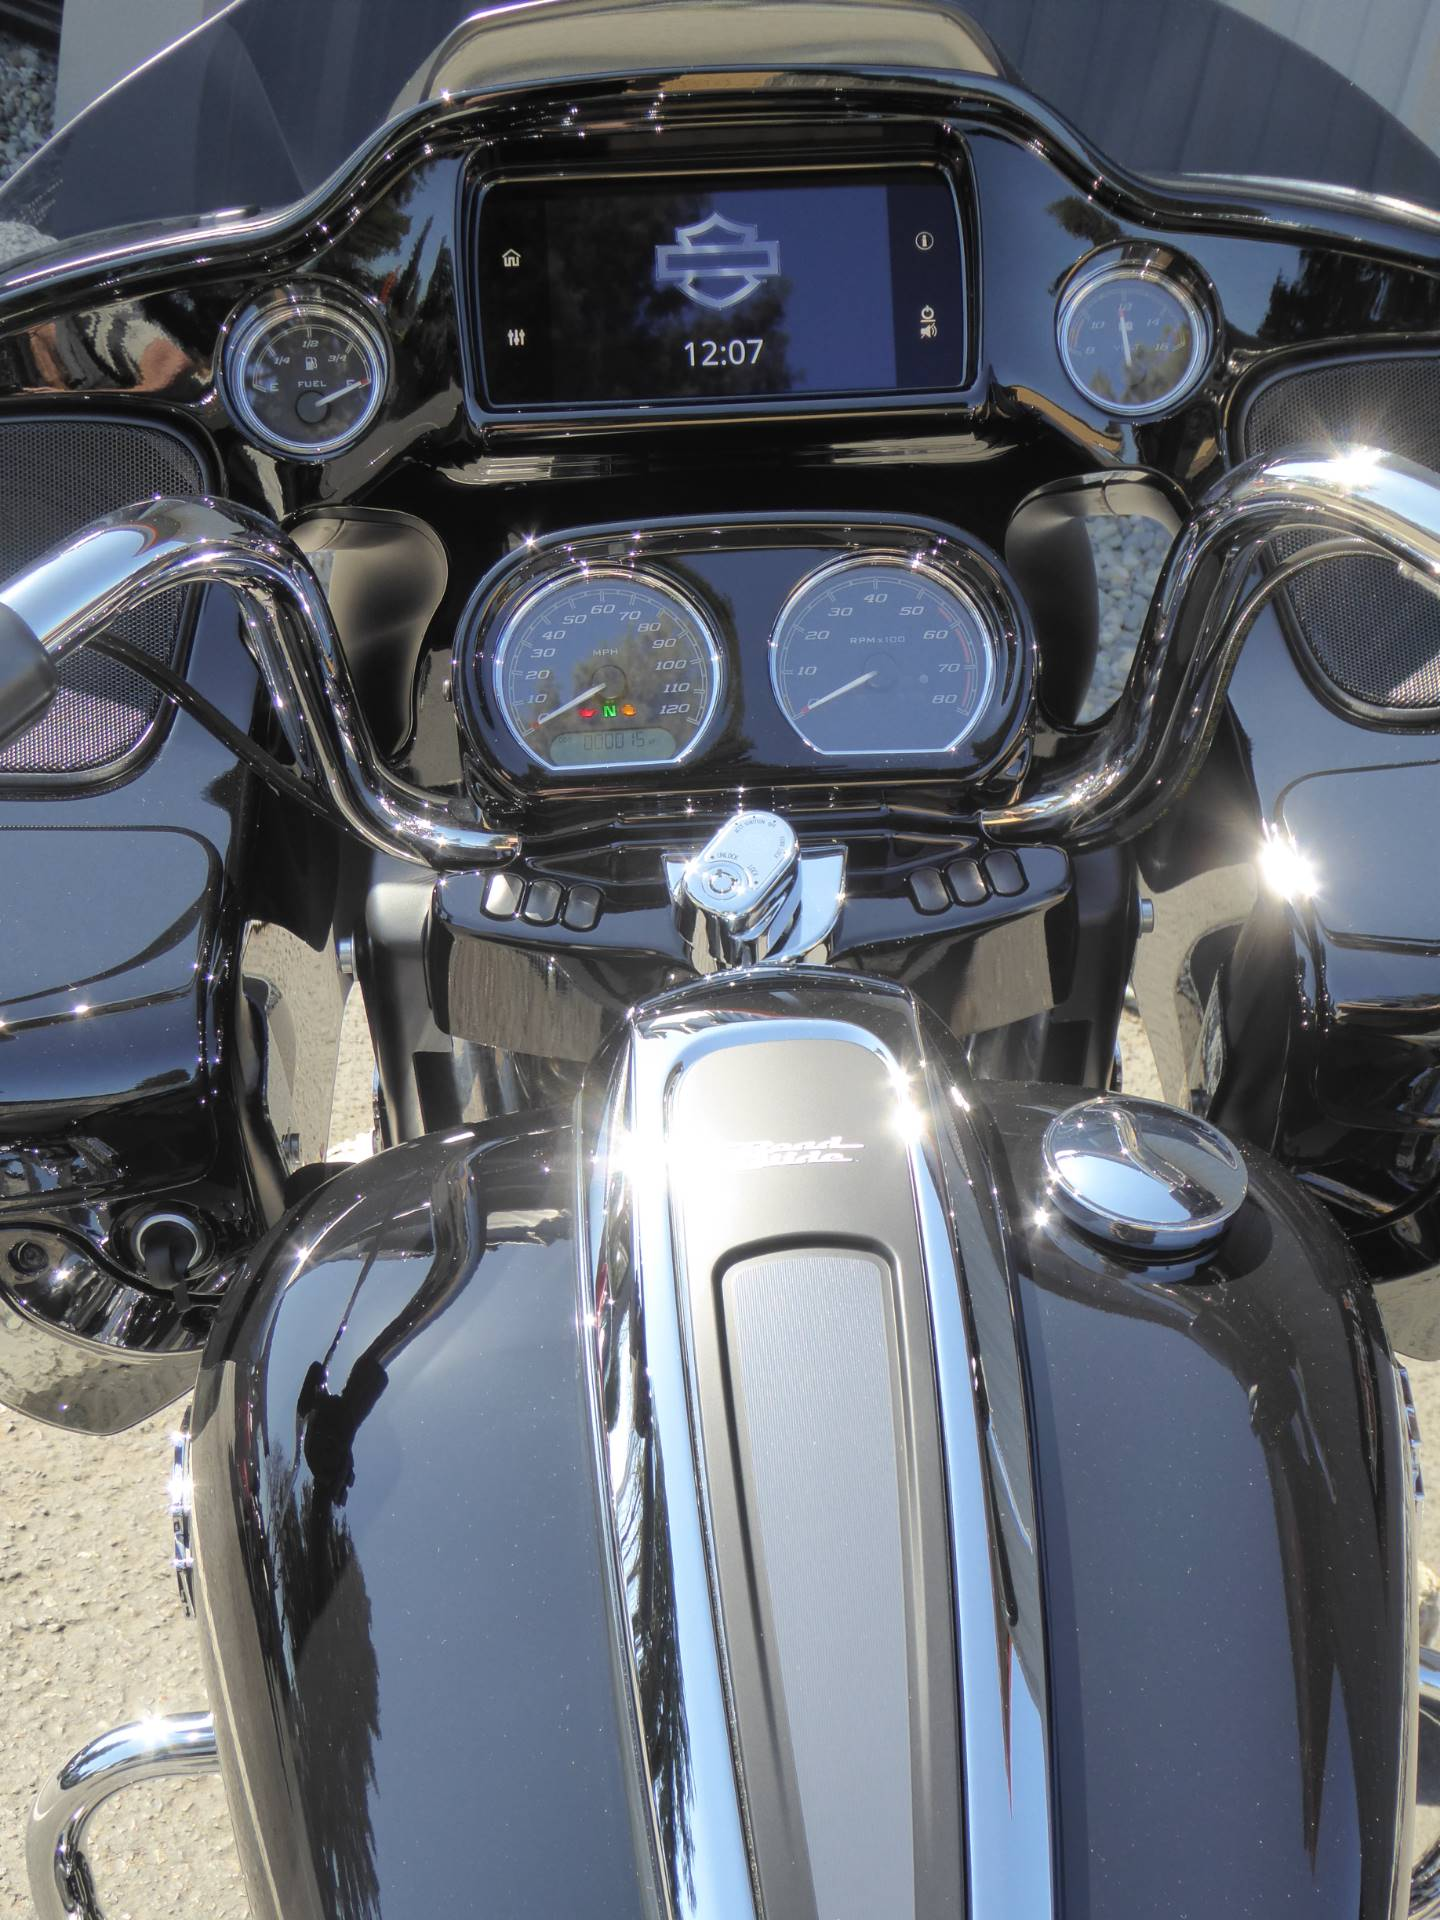 2021 Harley-Davidson FLTRXS ROAD GLIDE SPECIAL in Cotati, California - Photo 5